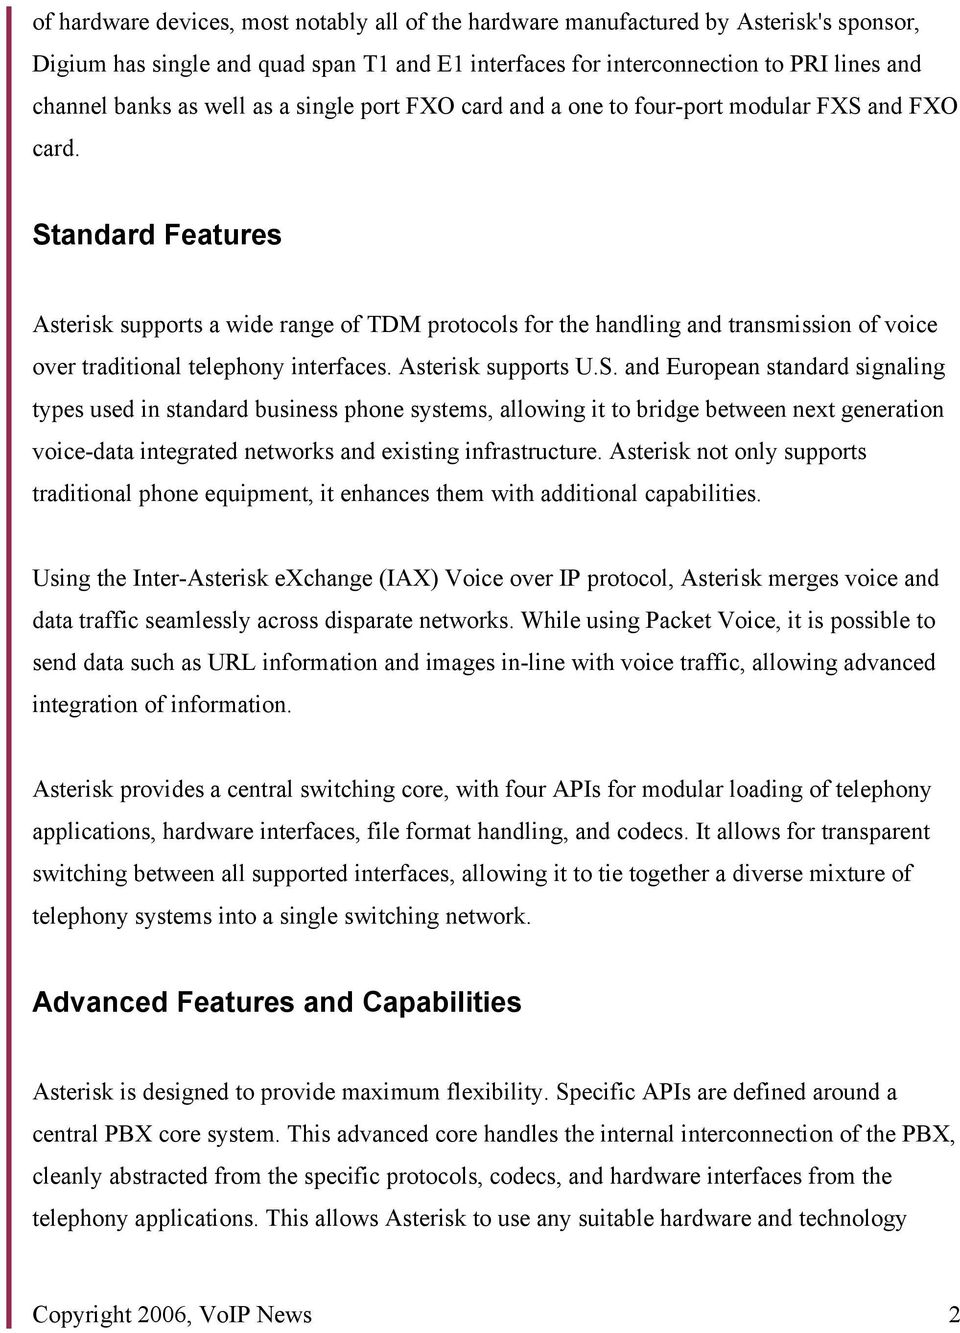 Standard Features Asterisk supports a wide range of TDM protocols for the handling and transmission of voice over traditional telephony interfaces. Asterisk supports U.S. and European standard signaling types used in standard business phone systems, allowing it to bridge between next generation voice-data integrated networks and existing infrastructure.